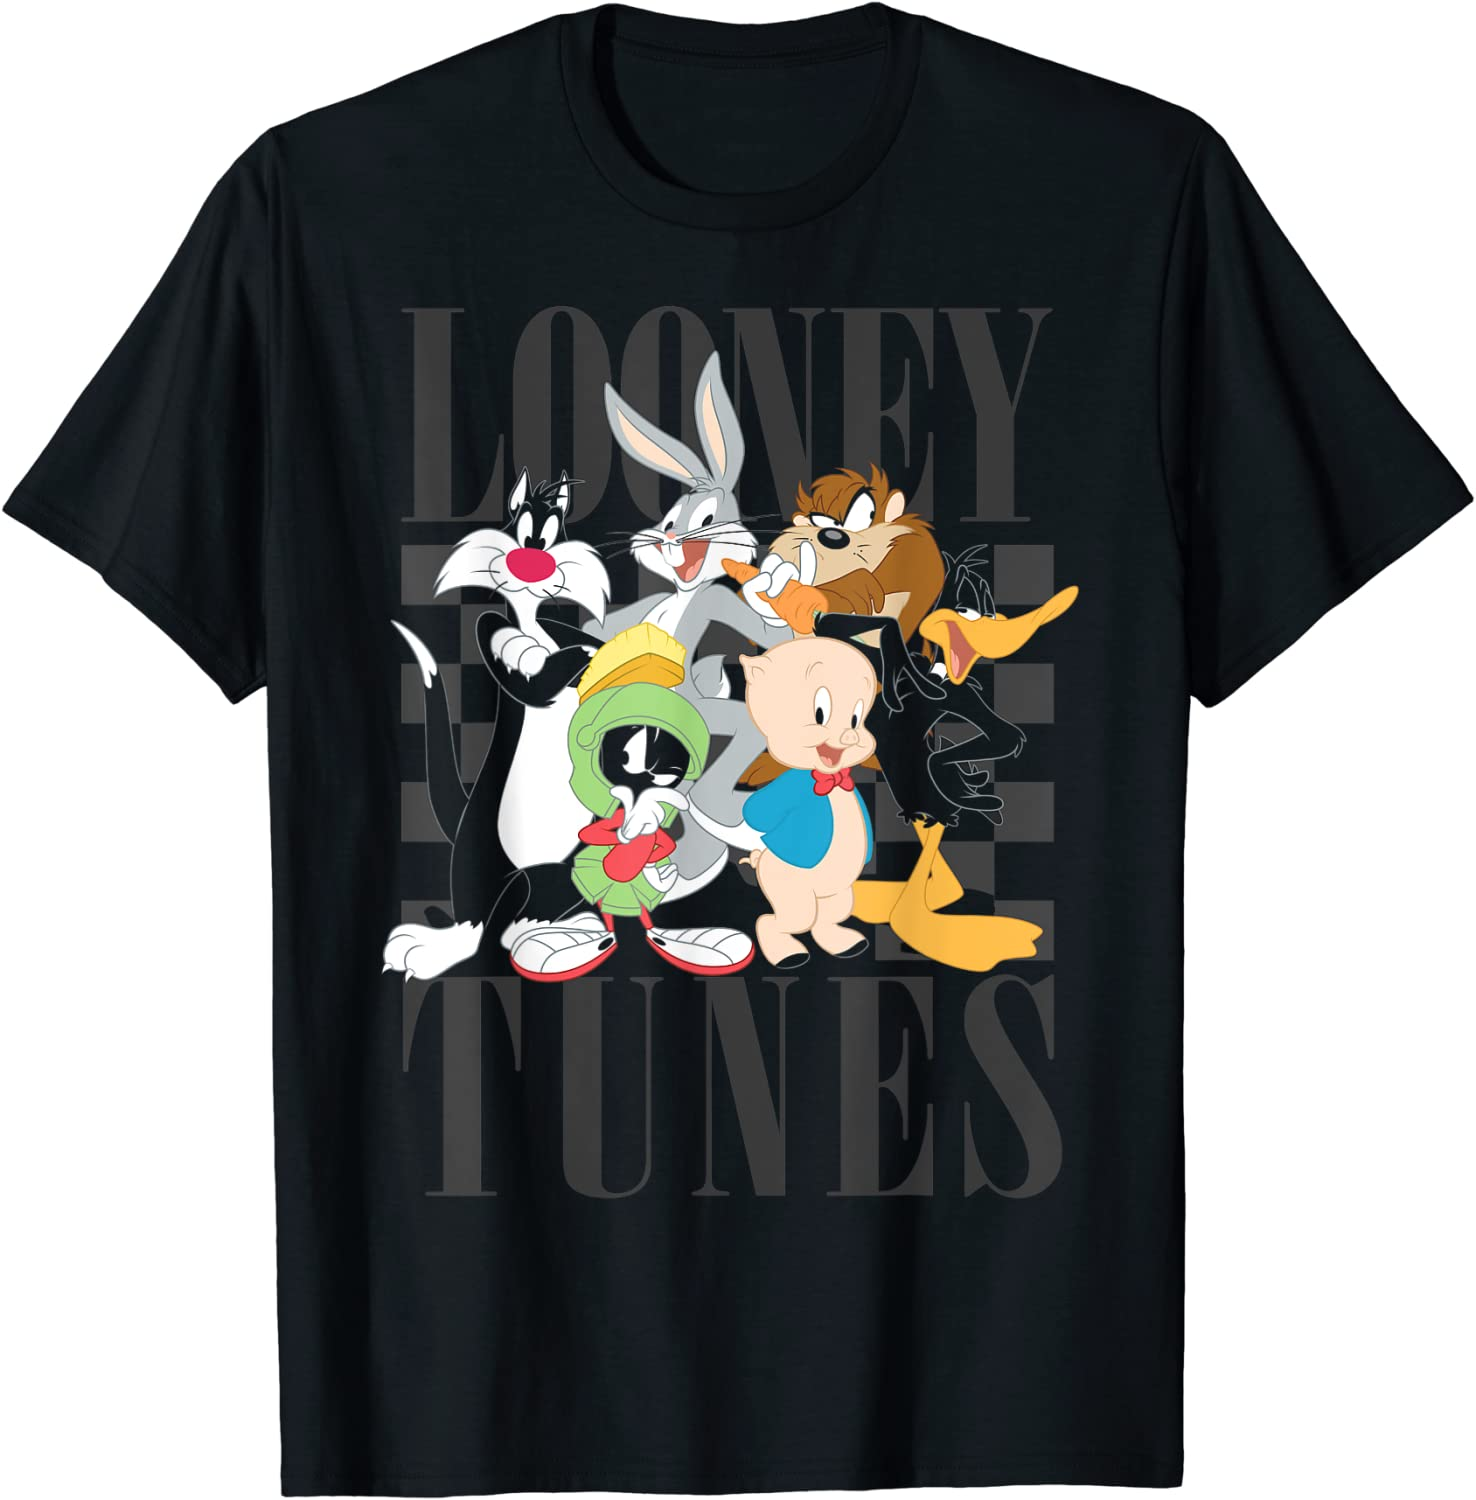 Looney Tunes 90's Style Group Shot T-Shirt